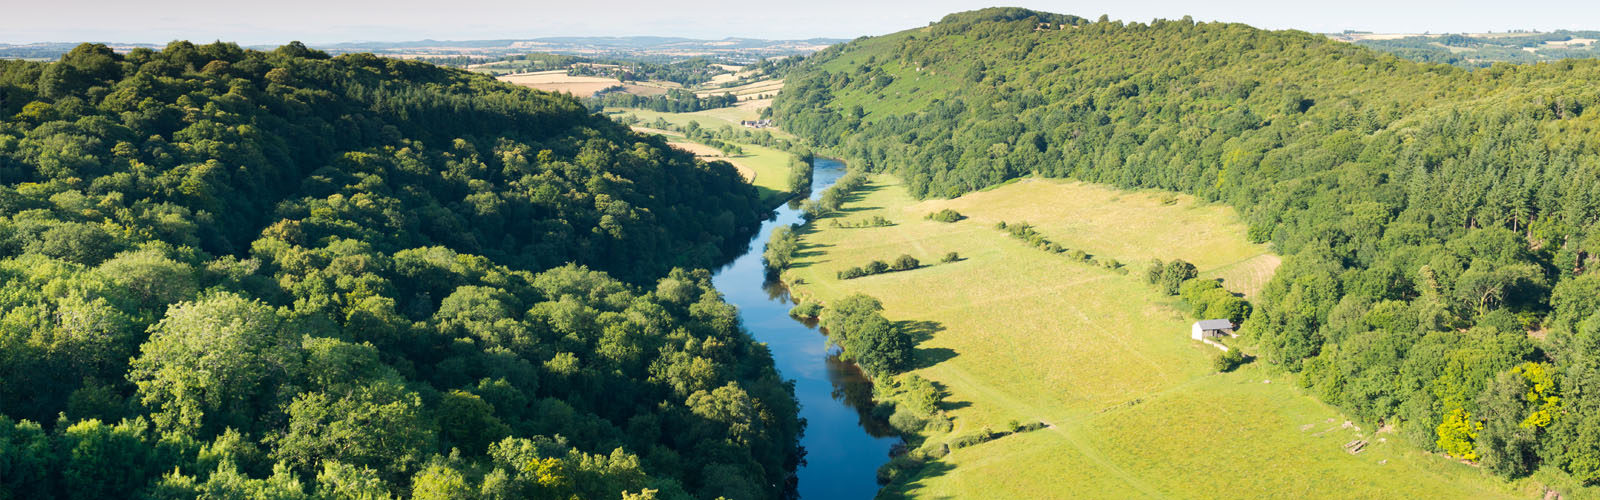 River Wye , Herefordshire.